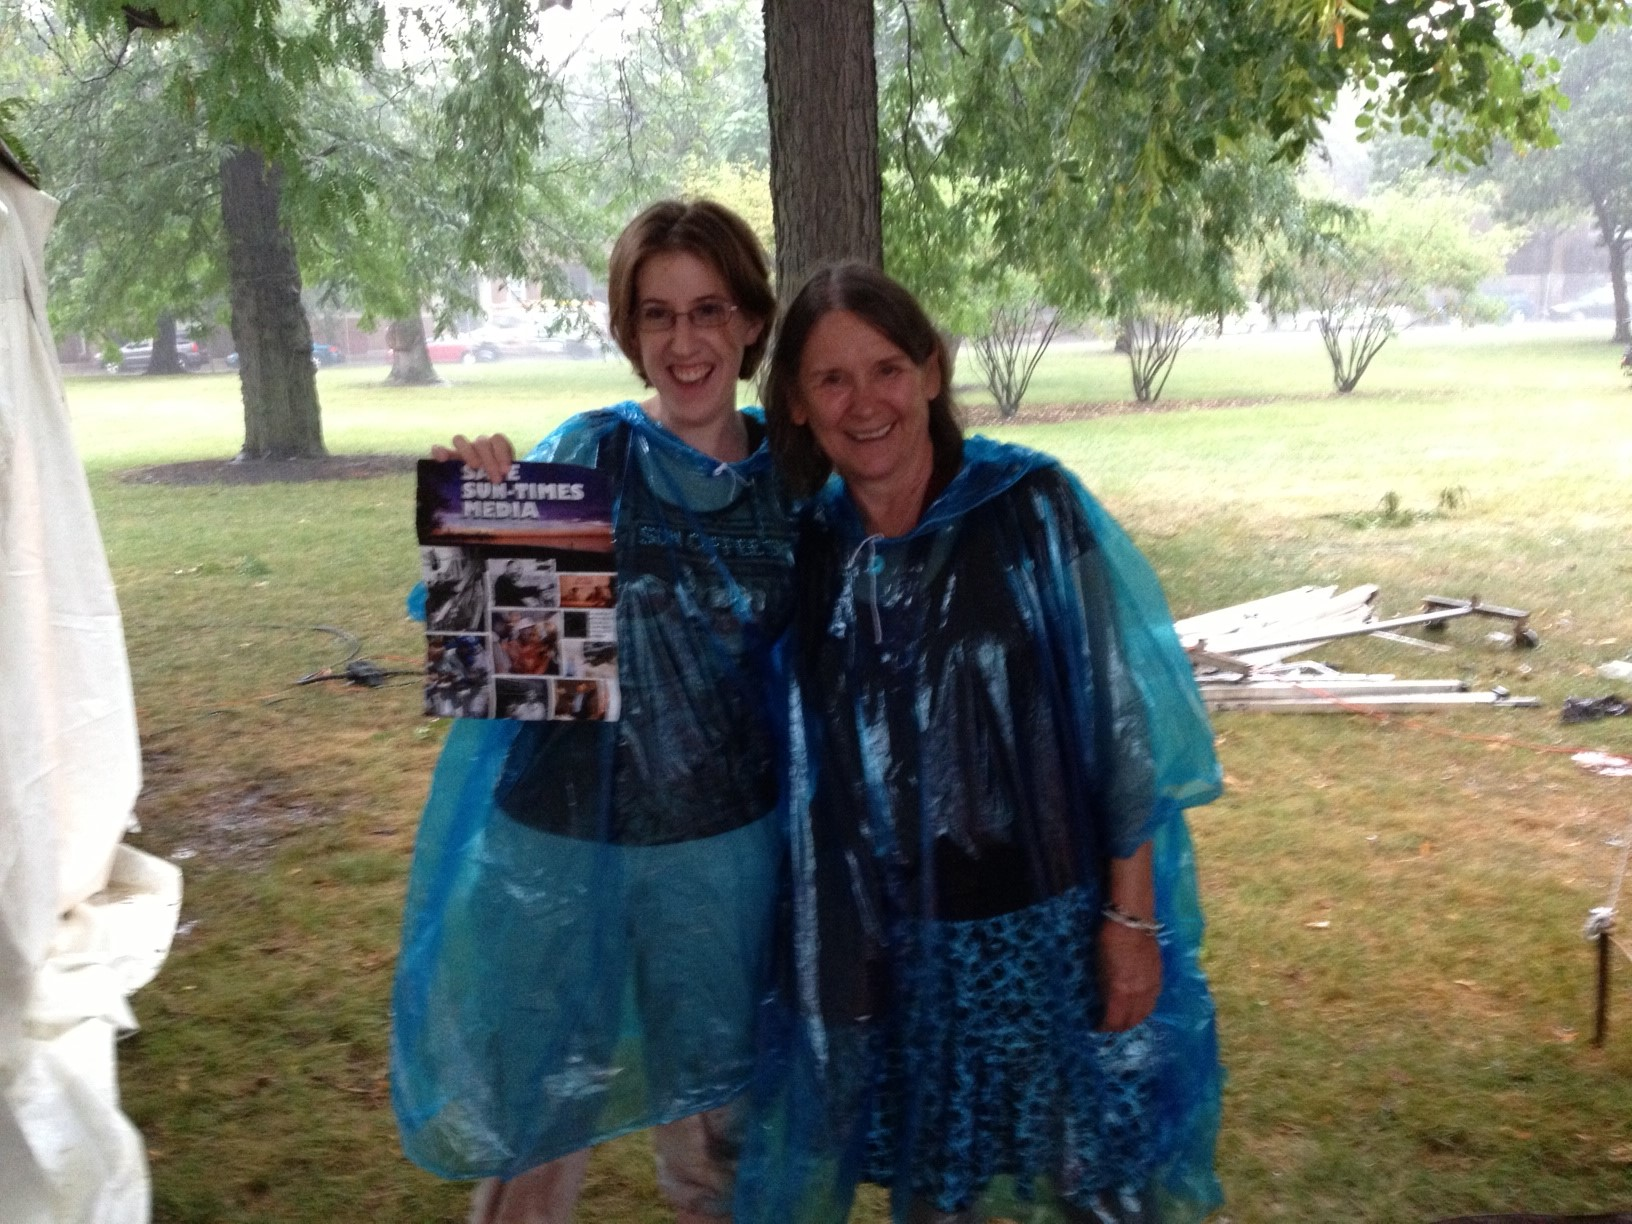 Beth Kramer and laid off Waukegan copy editor Meg Ross leaflet at African Festival of the Arts.